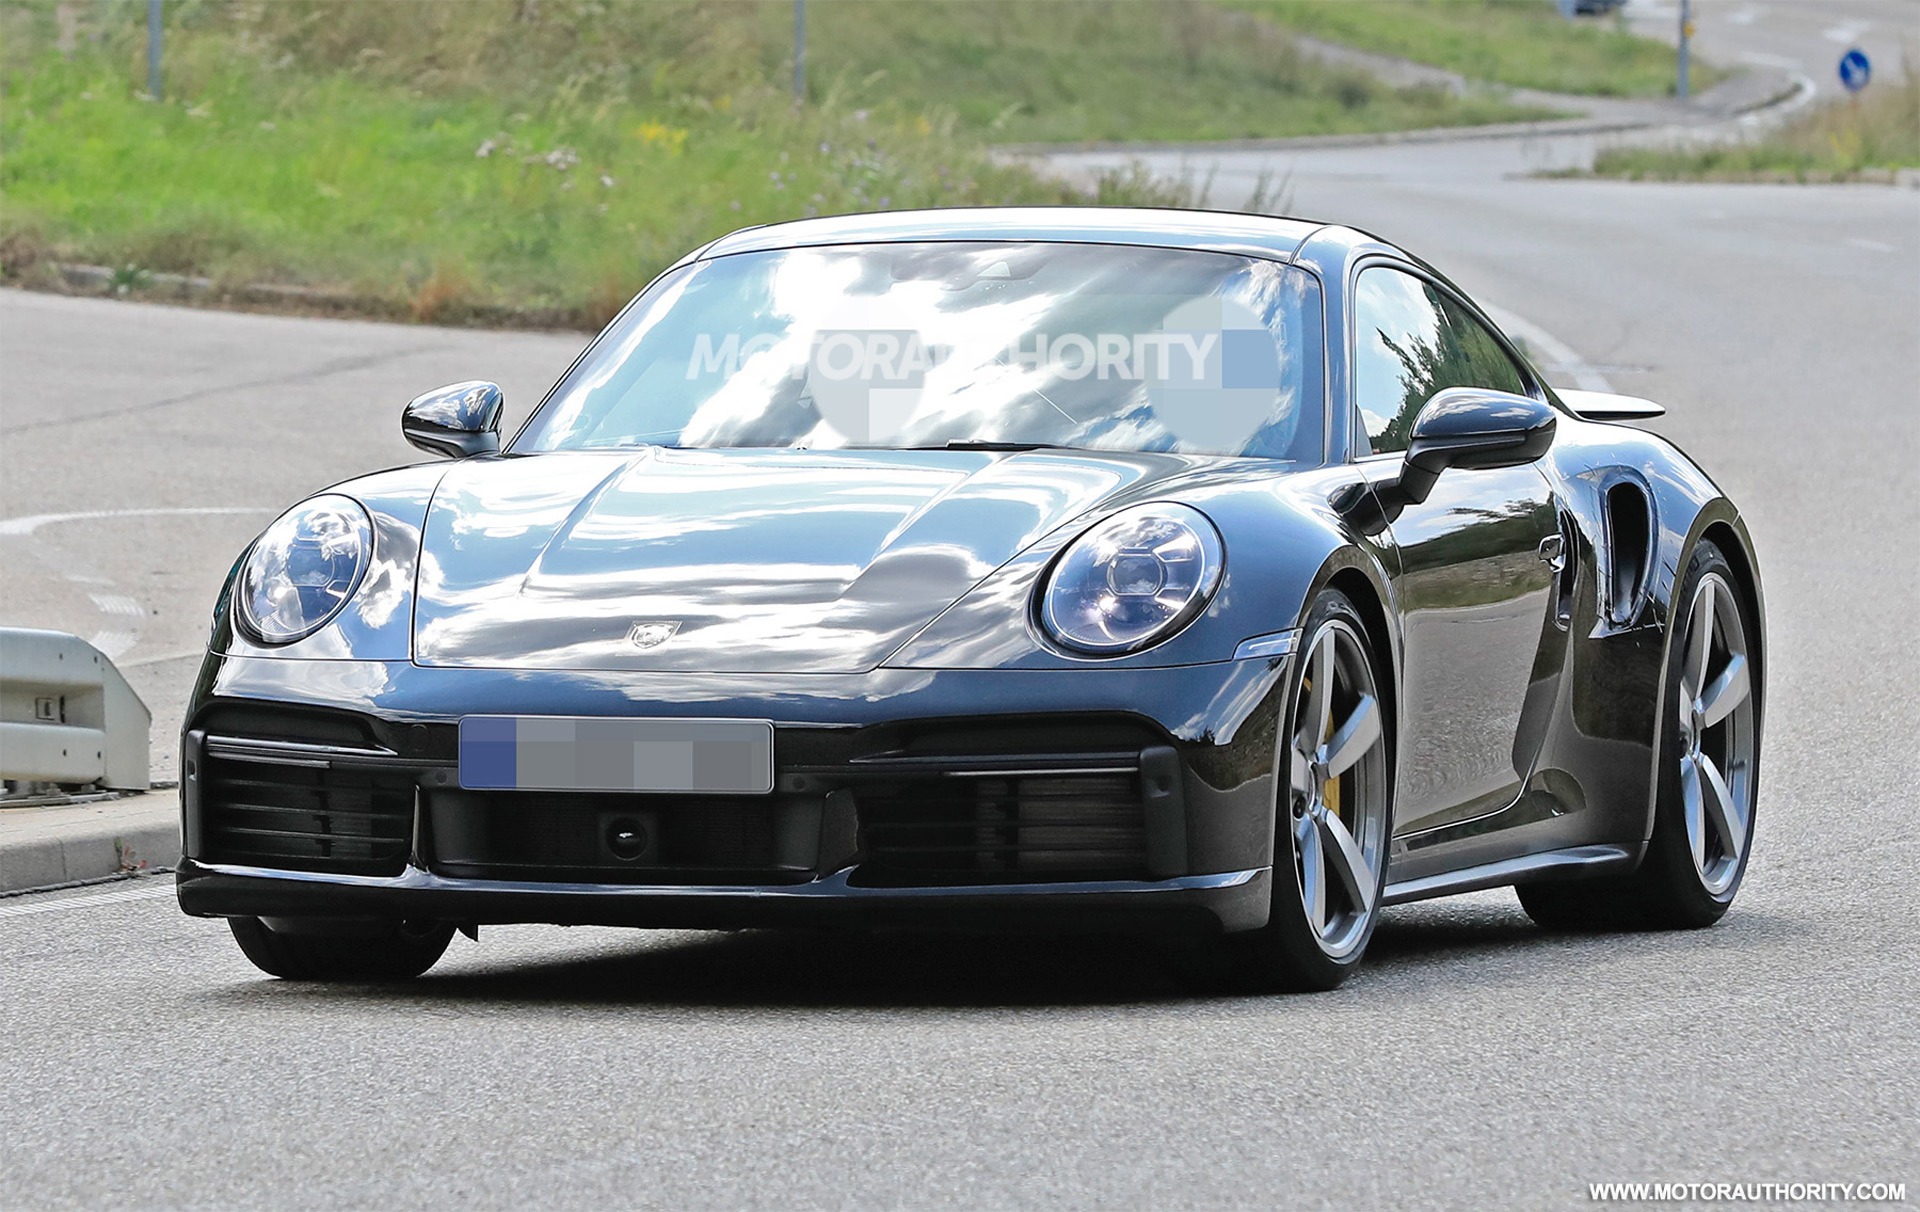 It has been more than a year since the new Porsche 911.992 debuted, but the mandatory Turbo and Turbo S specs are still missing from the lineup. Multiple sources have reported that these will be shown at the Geneva International Motor Show in Switzerland coming up in three weeks.